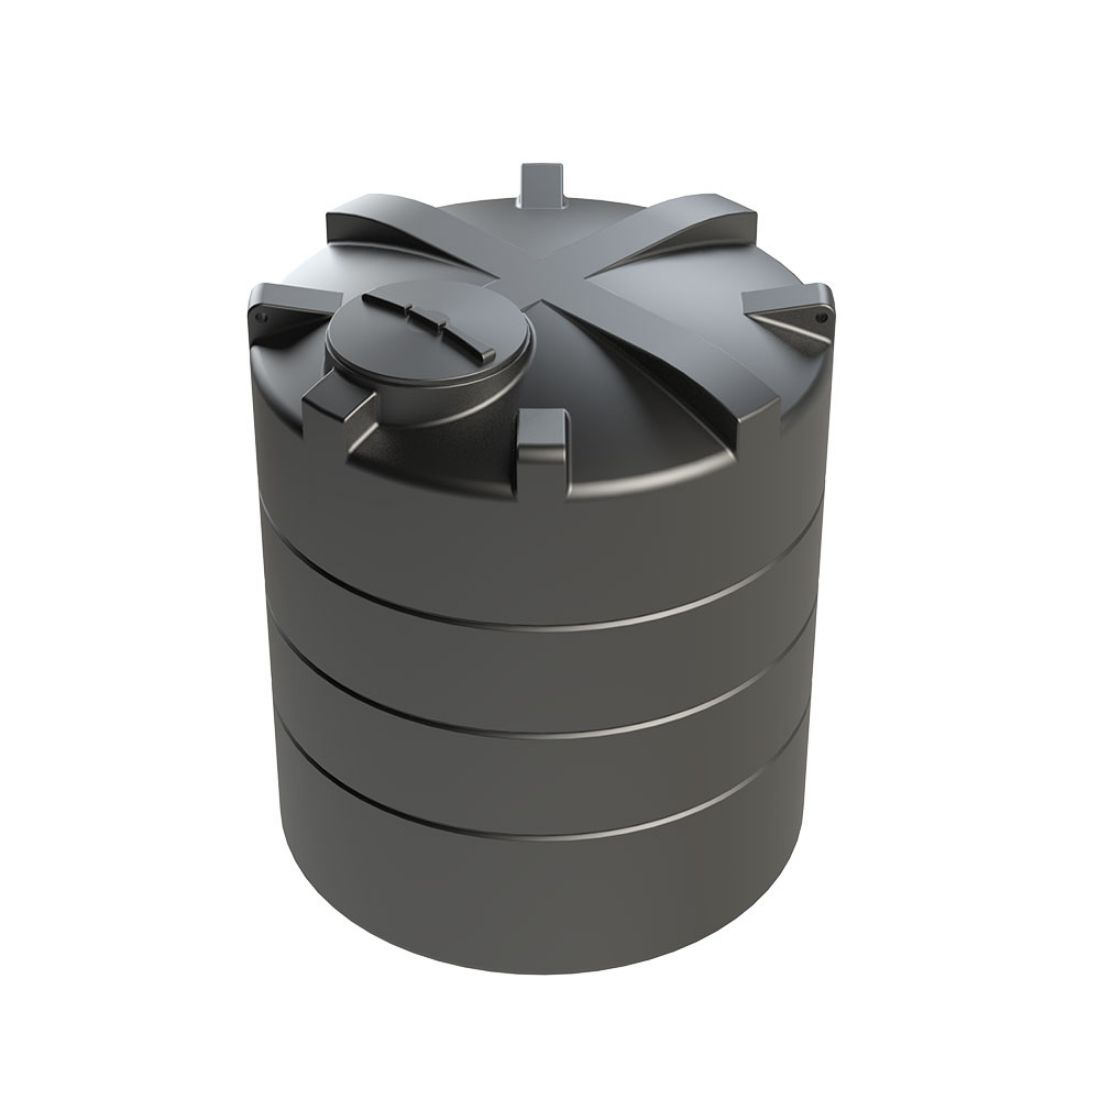 Enduramaxx 5,000 Litre Vertical Potable WRAS Water Storage Tank